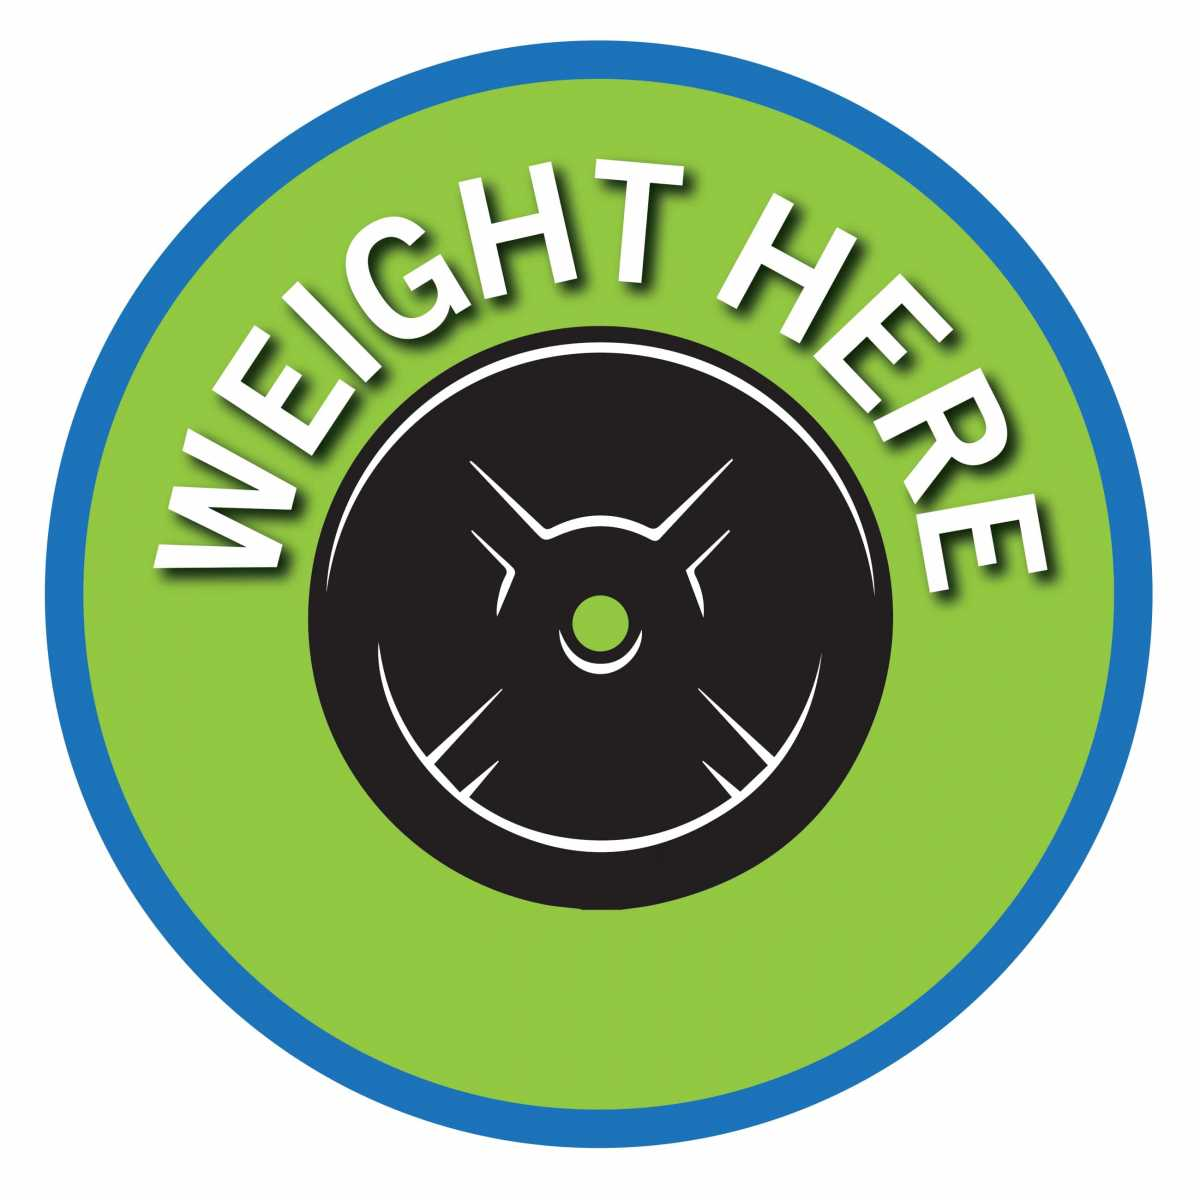 WeightHere_12x12_Proof